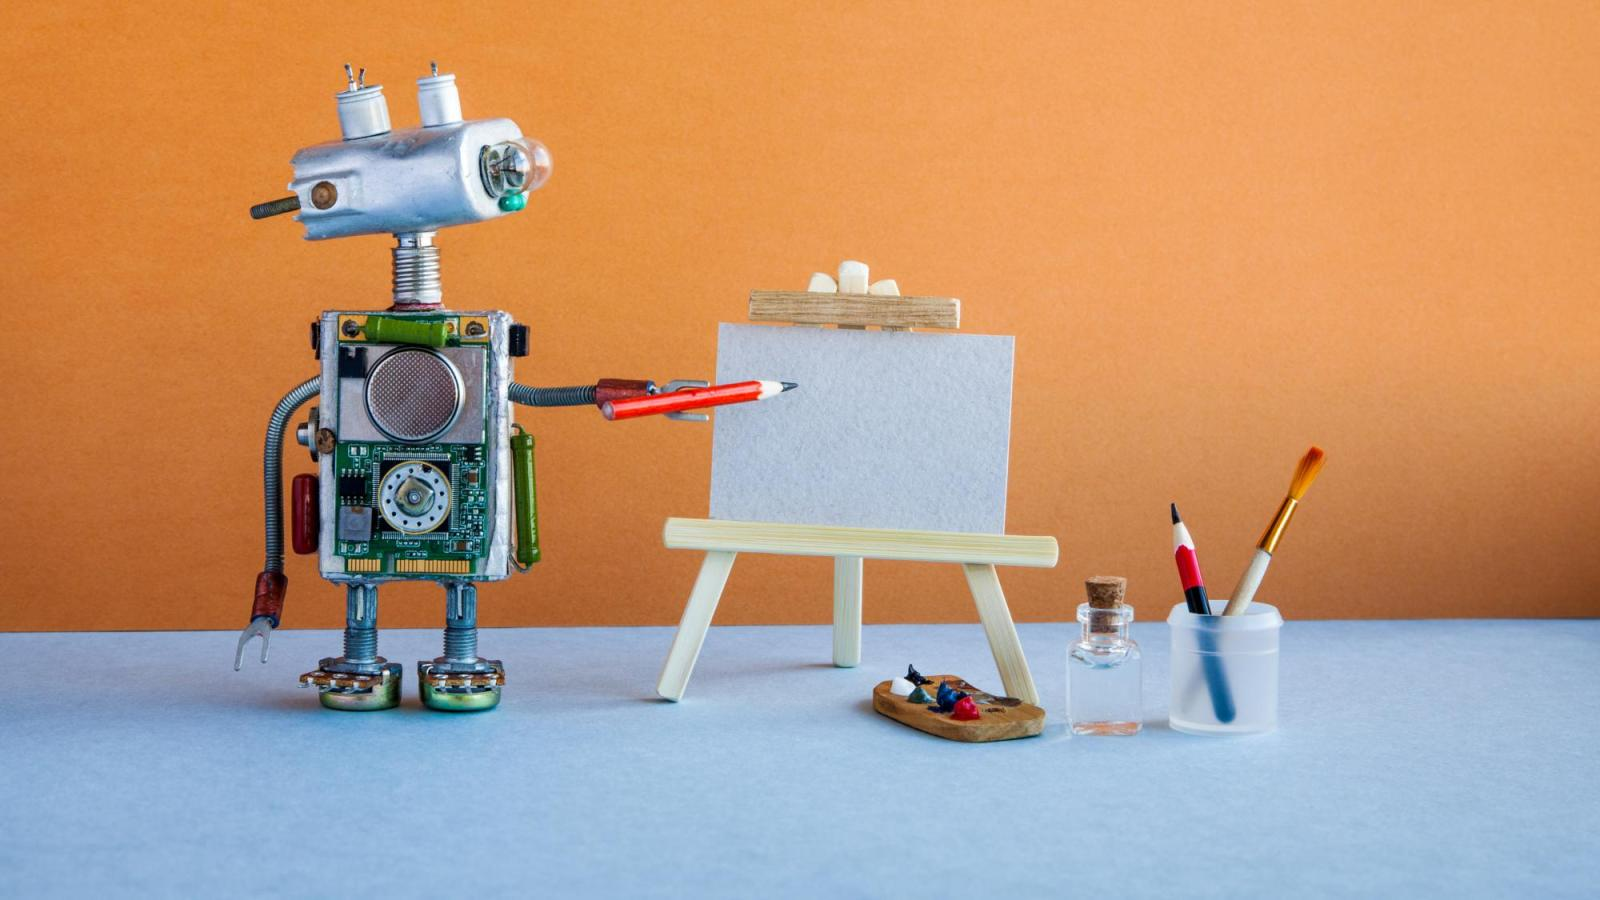 A robot standing with a pencil next to paper